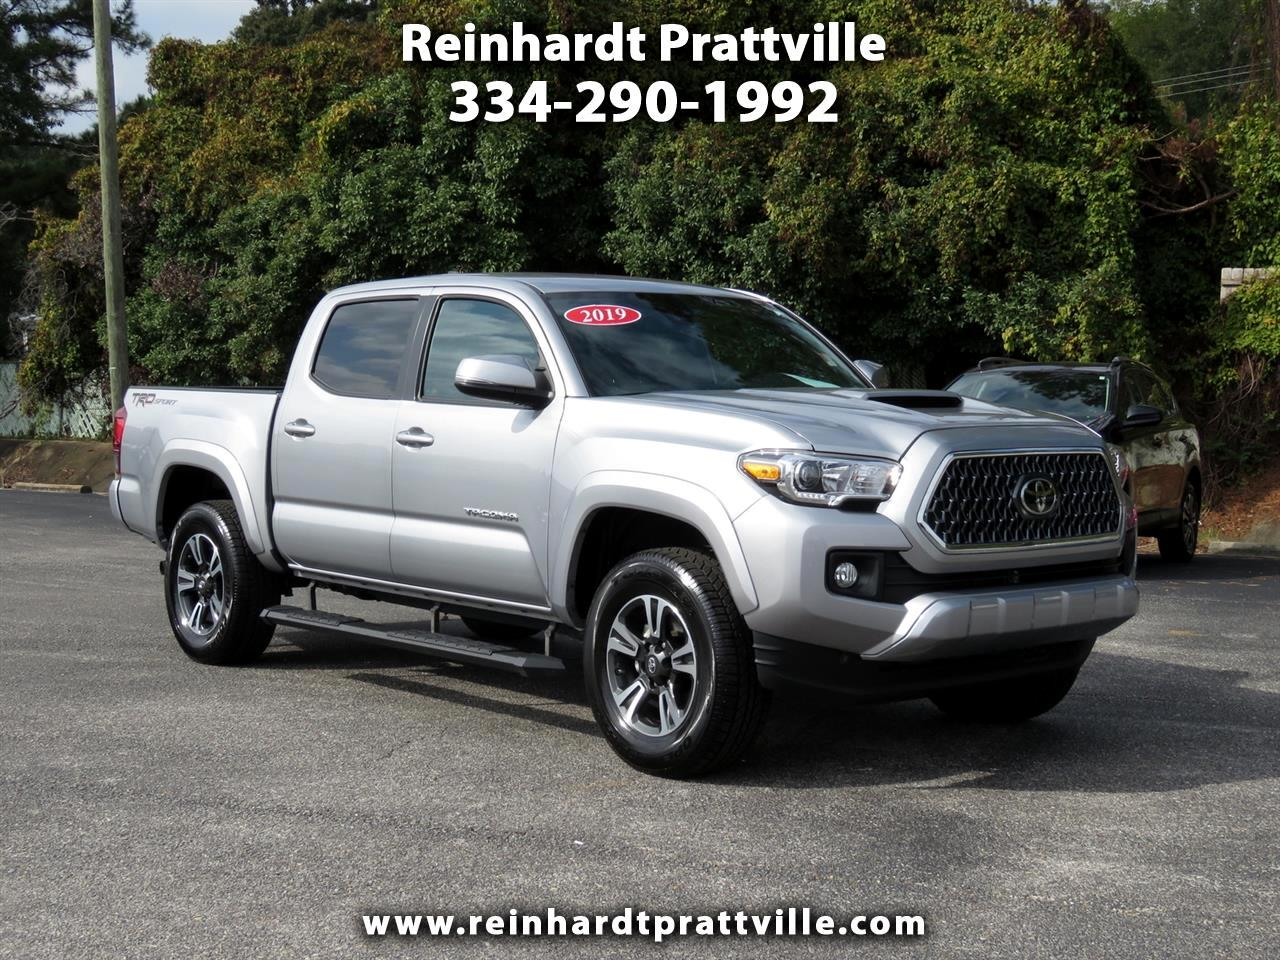 2019 Toyota Tacoma 2WD SR5 Double Cab 5' Bed V6 AT (Natl)